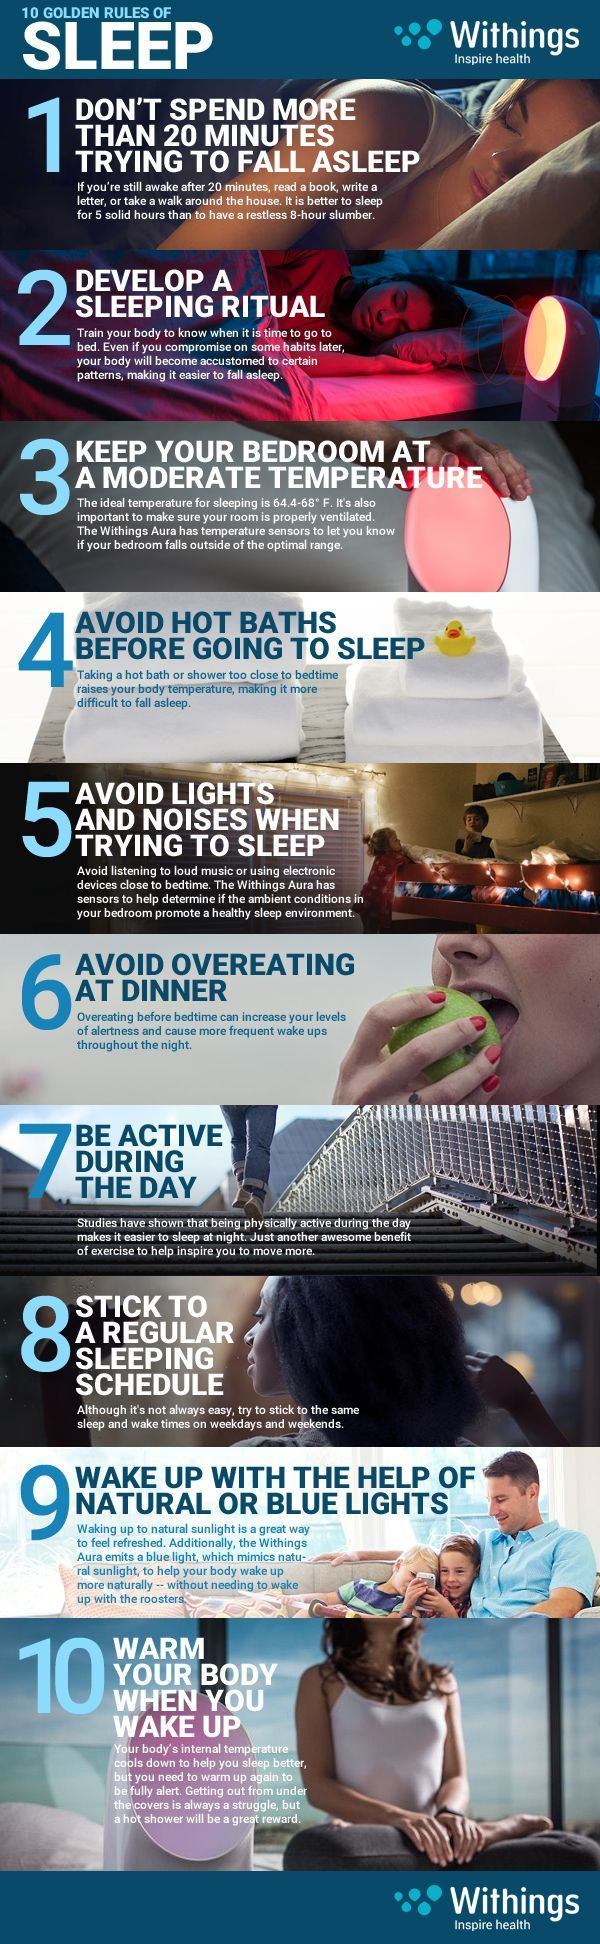 These 10 sleep tips aren't just nice to have, they can help improve your health and safety.: